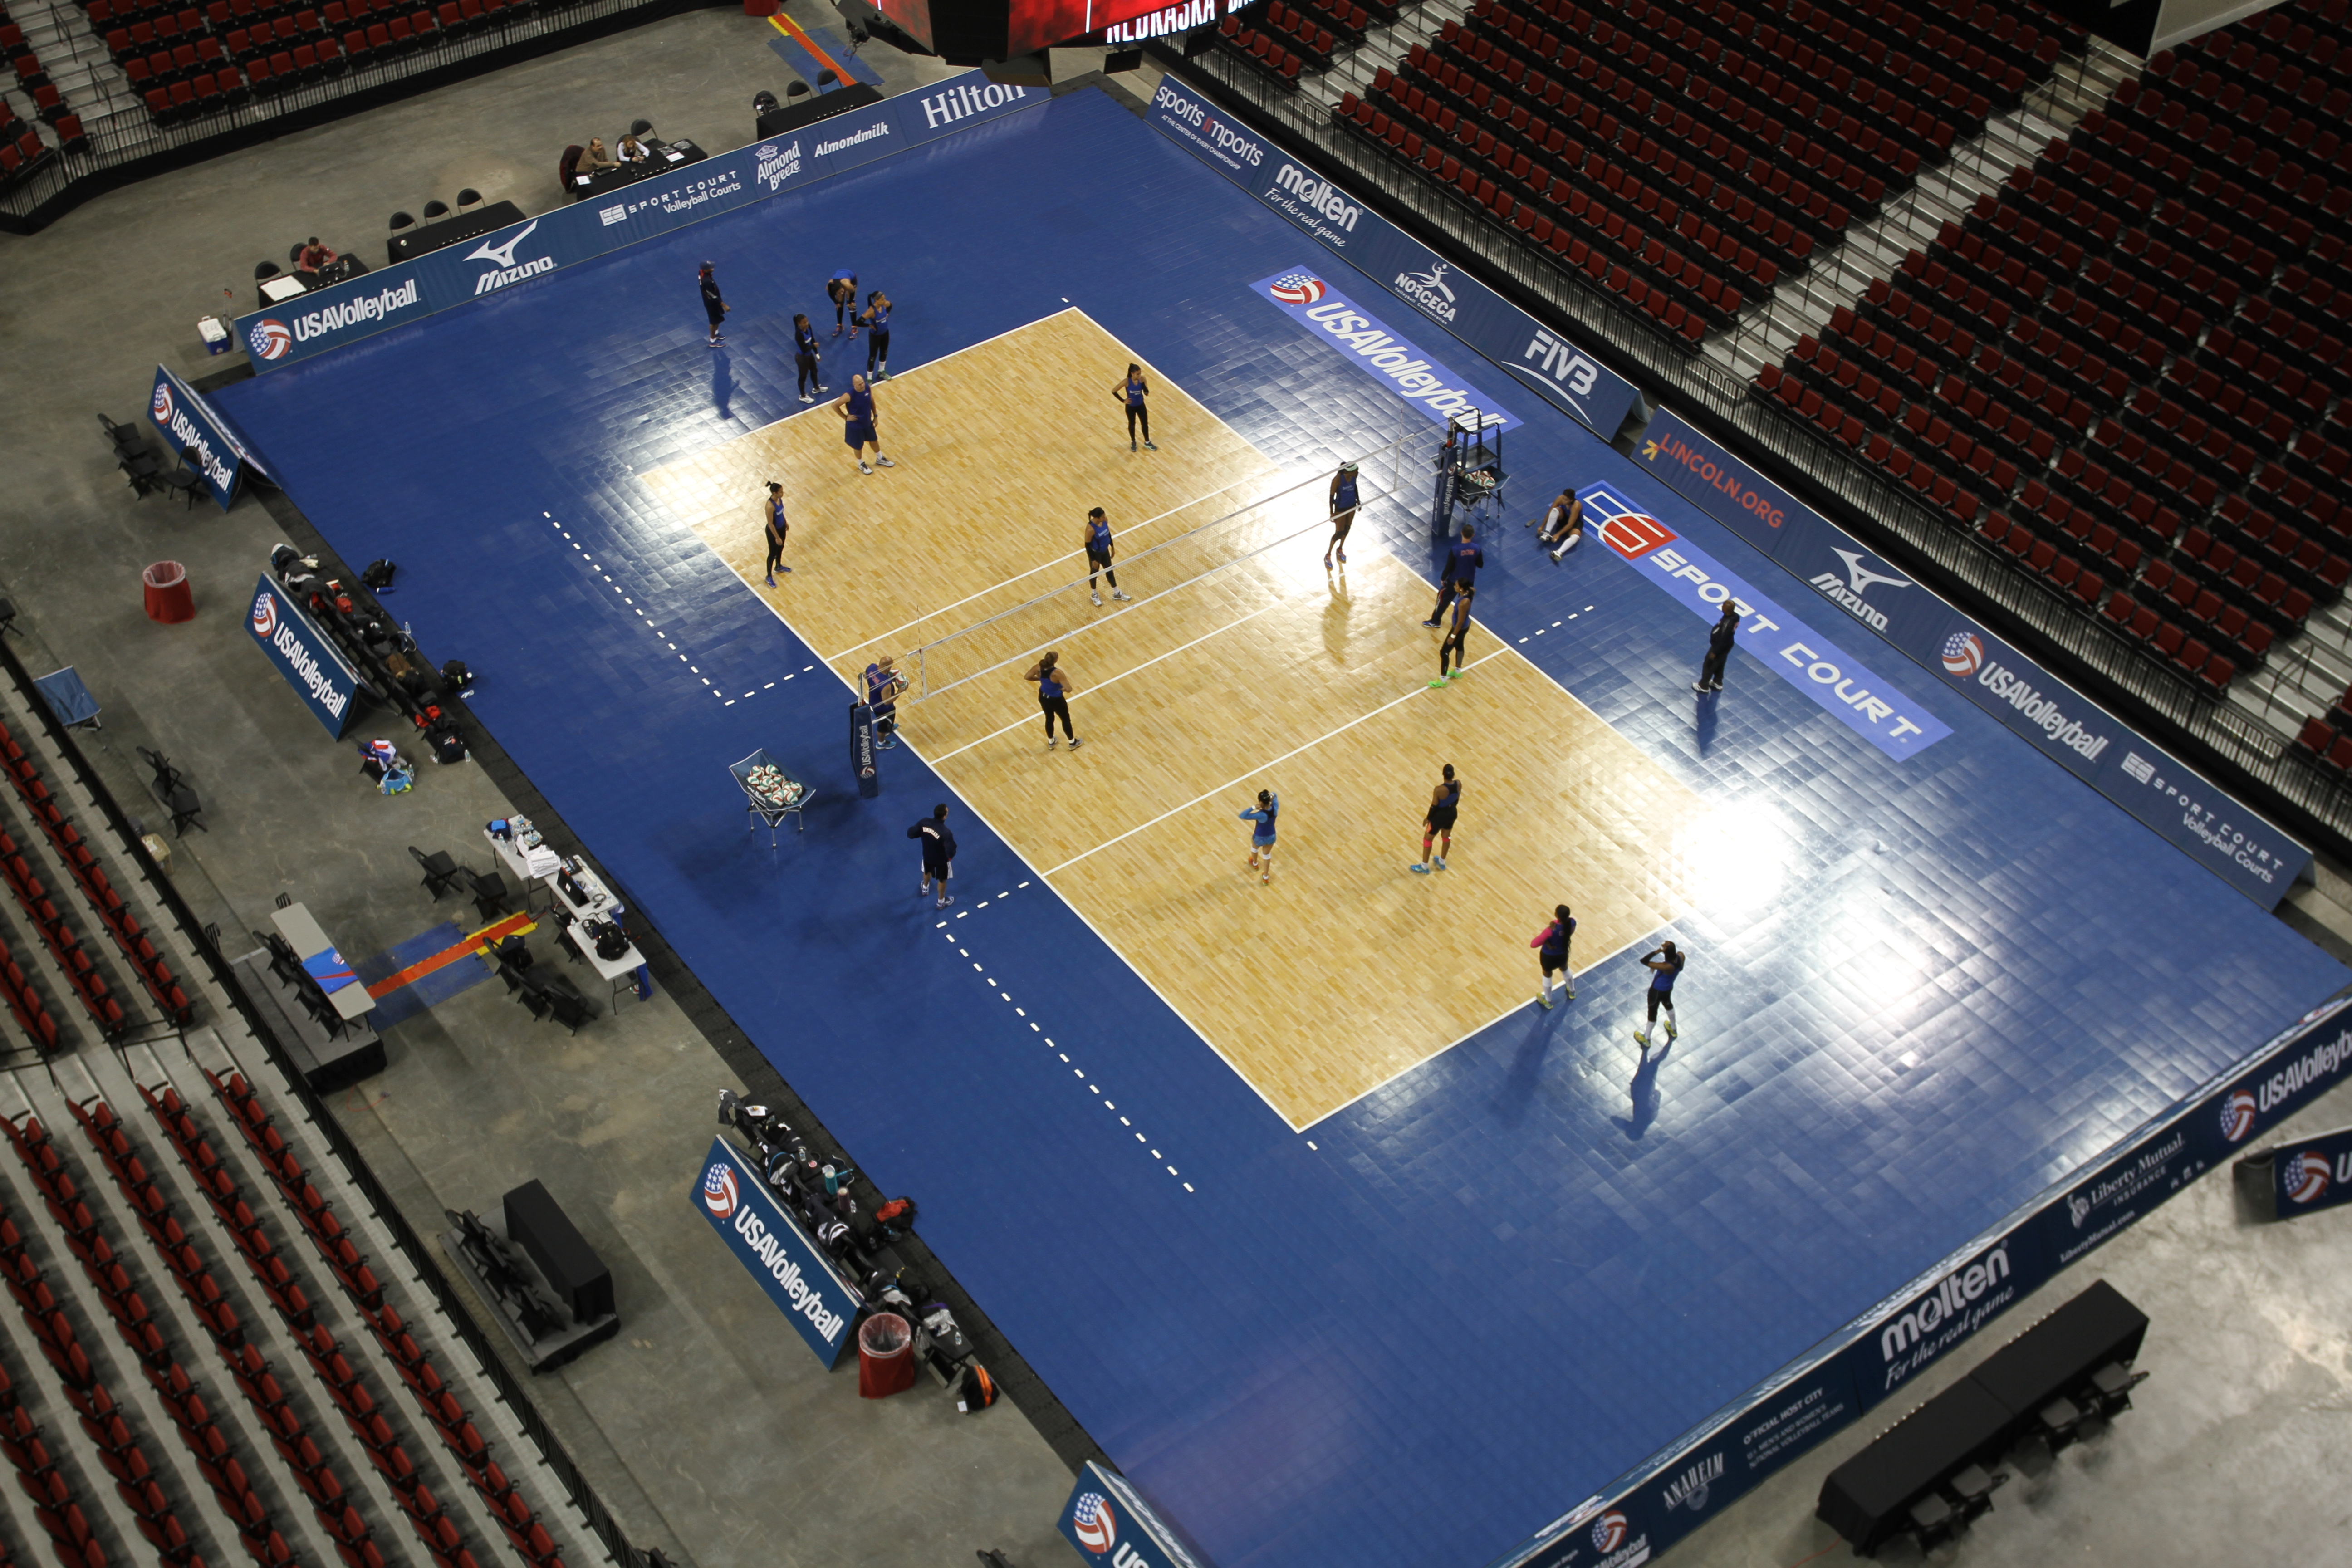 USAV Practices on the Sport Court Volleyball Court